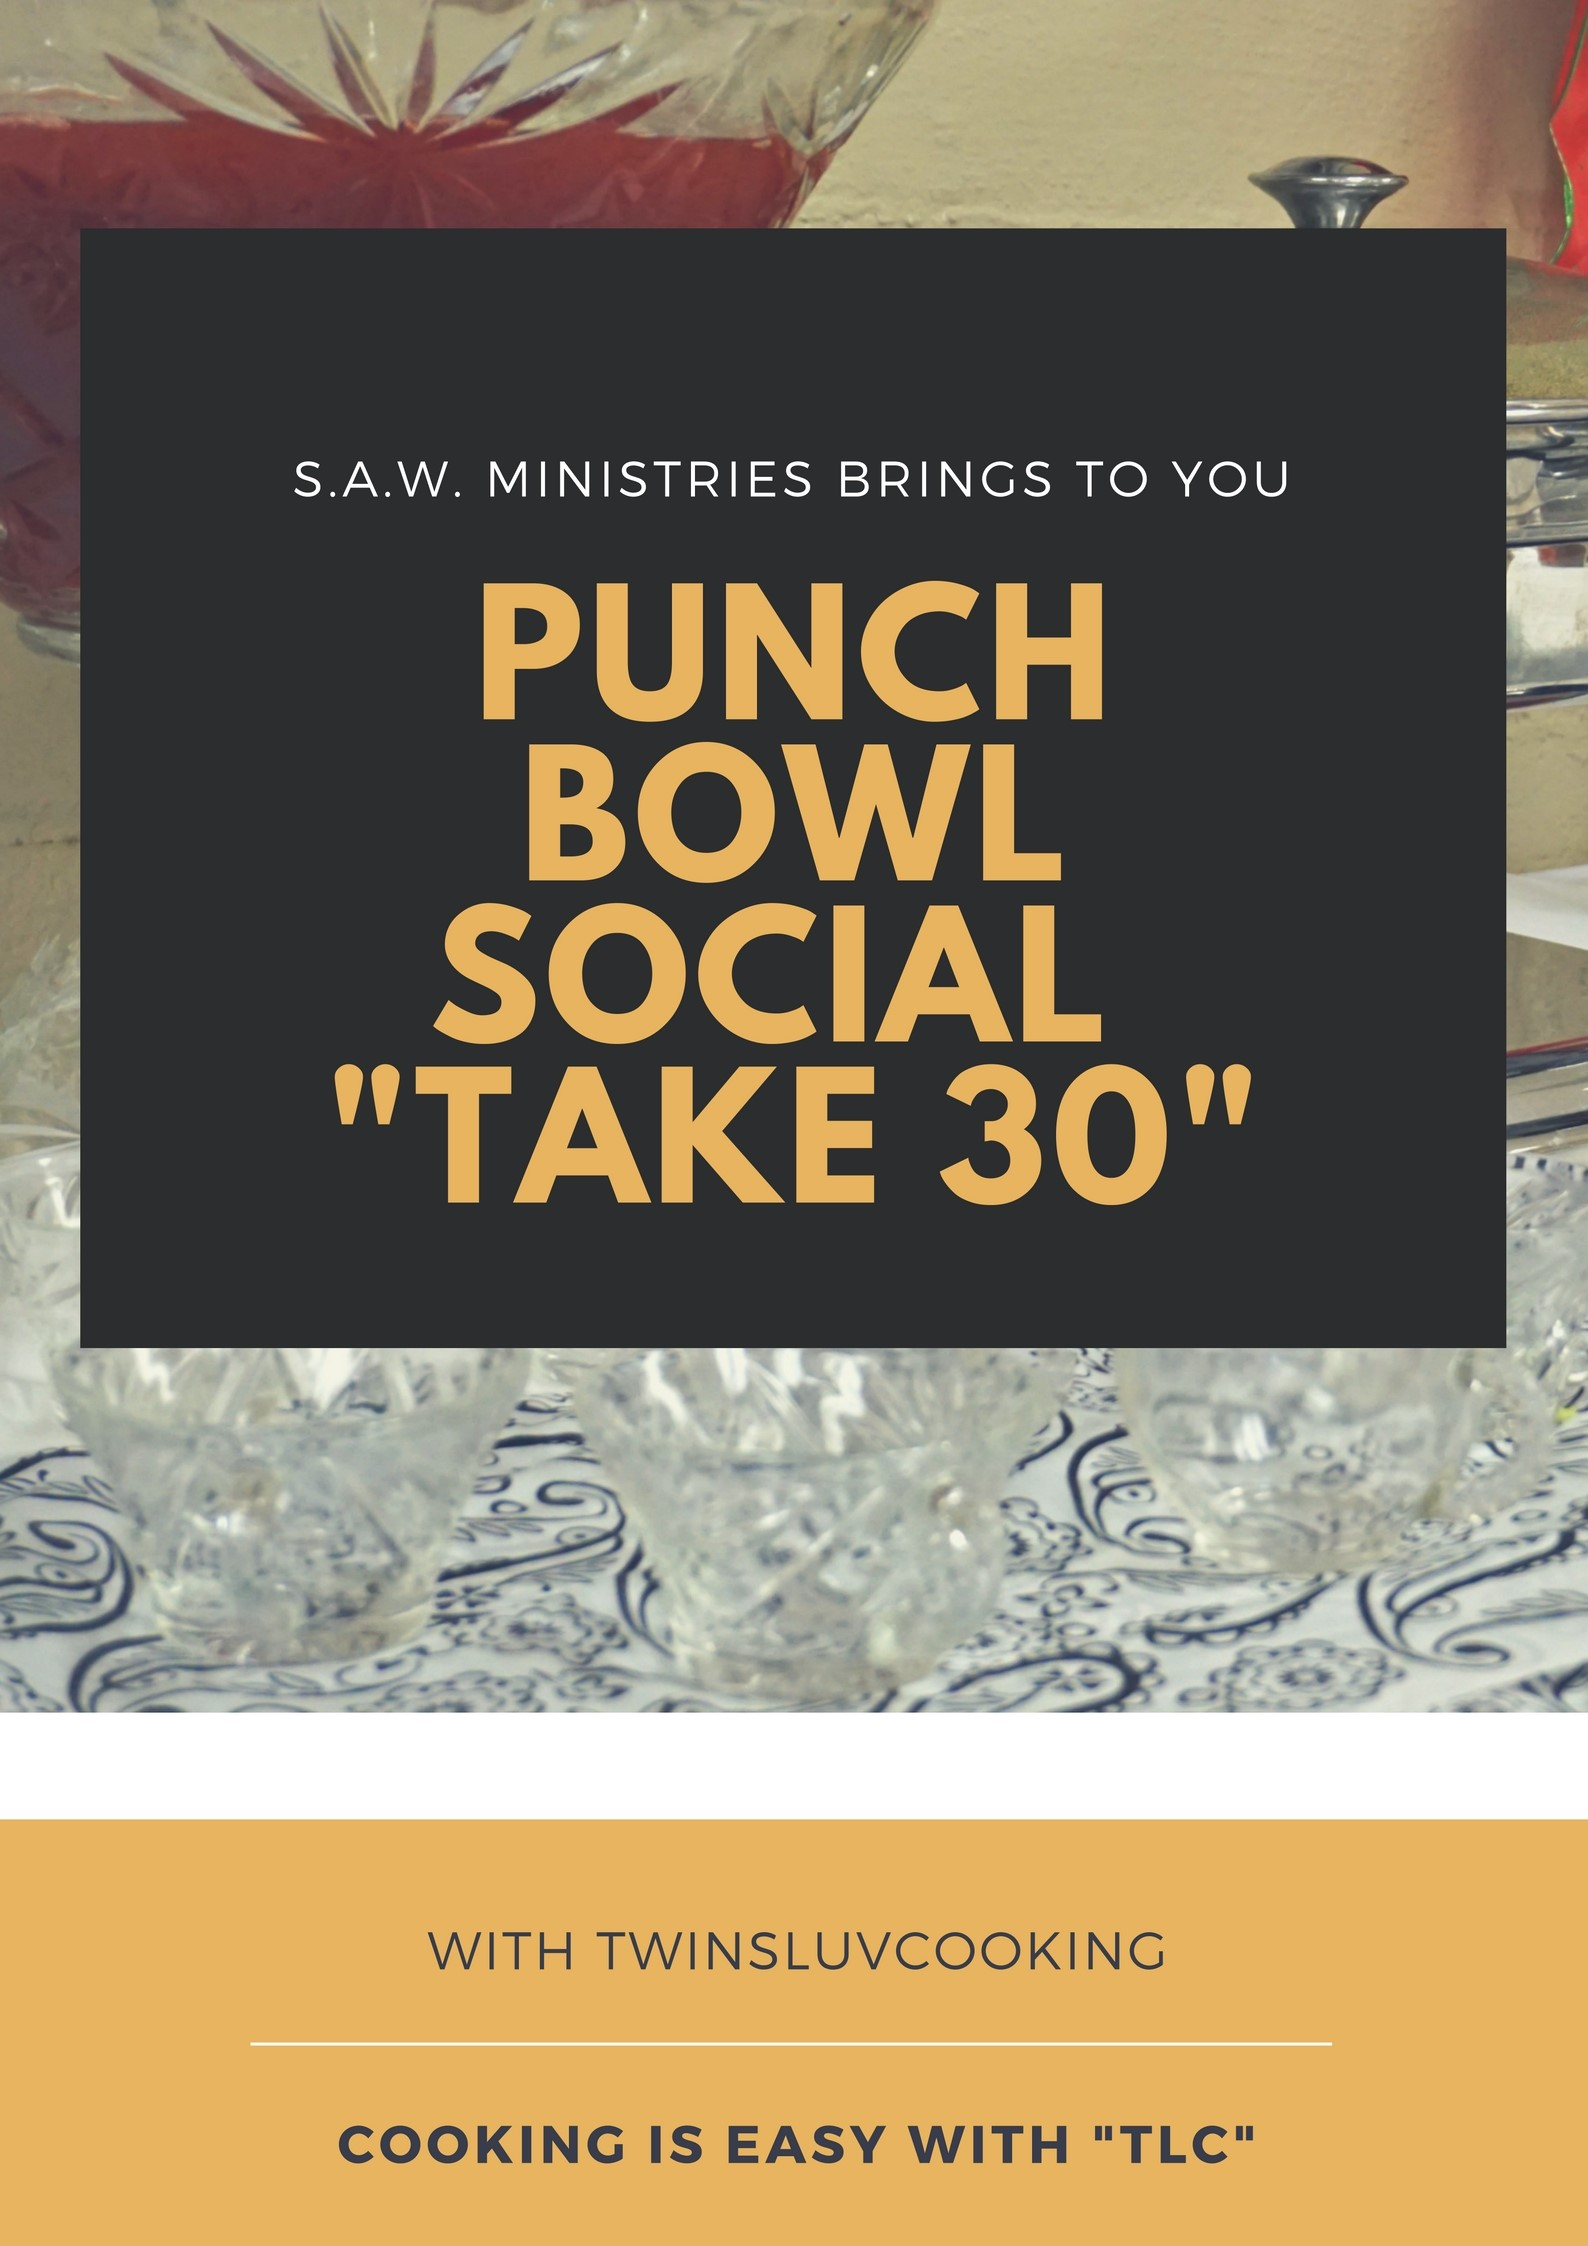 Punch Bowl Social – TwinsLuvCooking